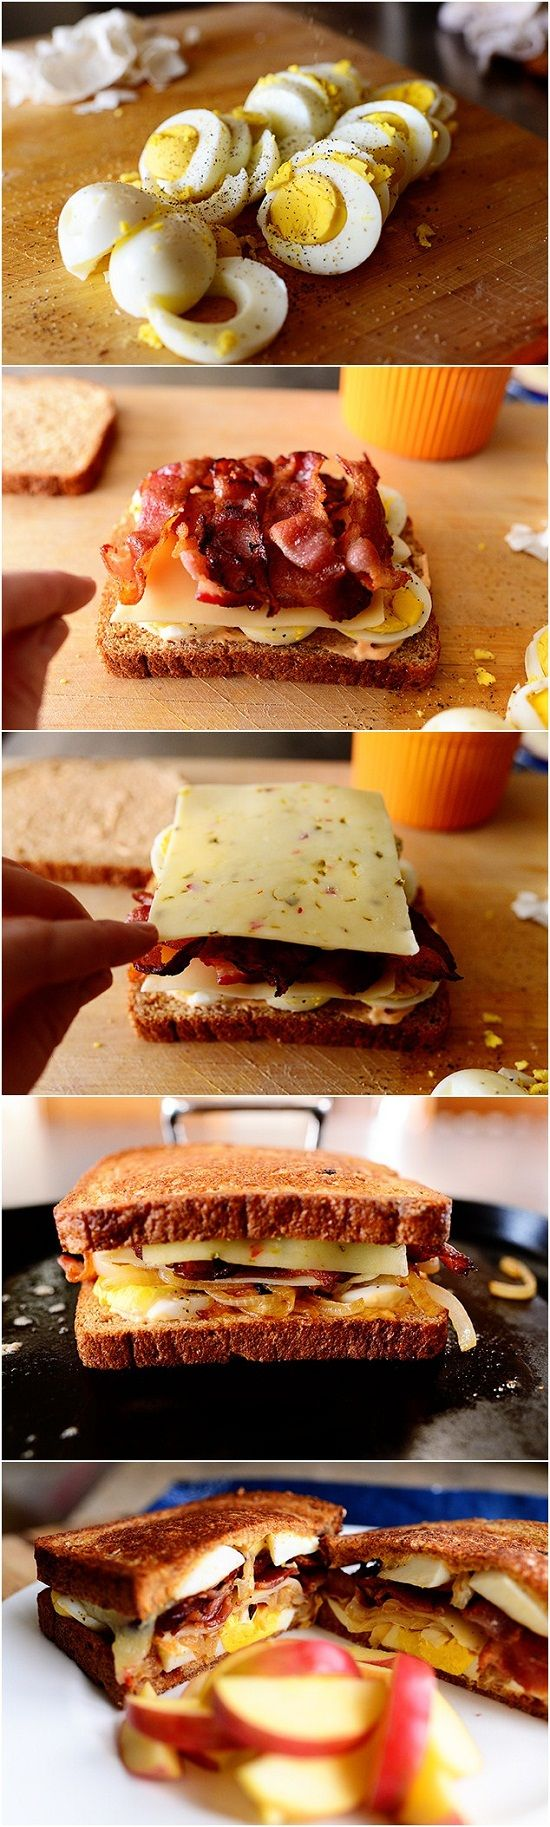 Best Recipes, #22 Ultimate Grilled Cheese Sandwich